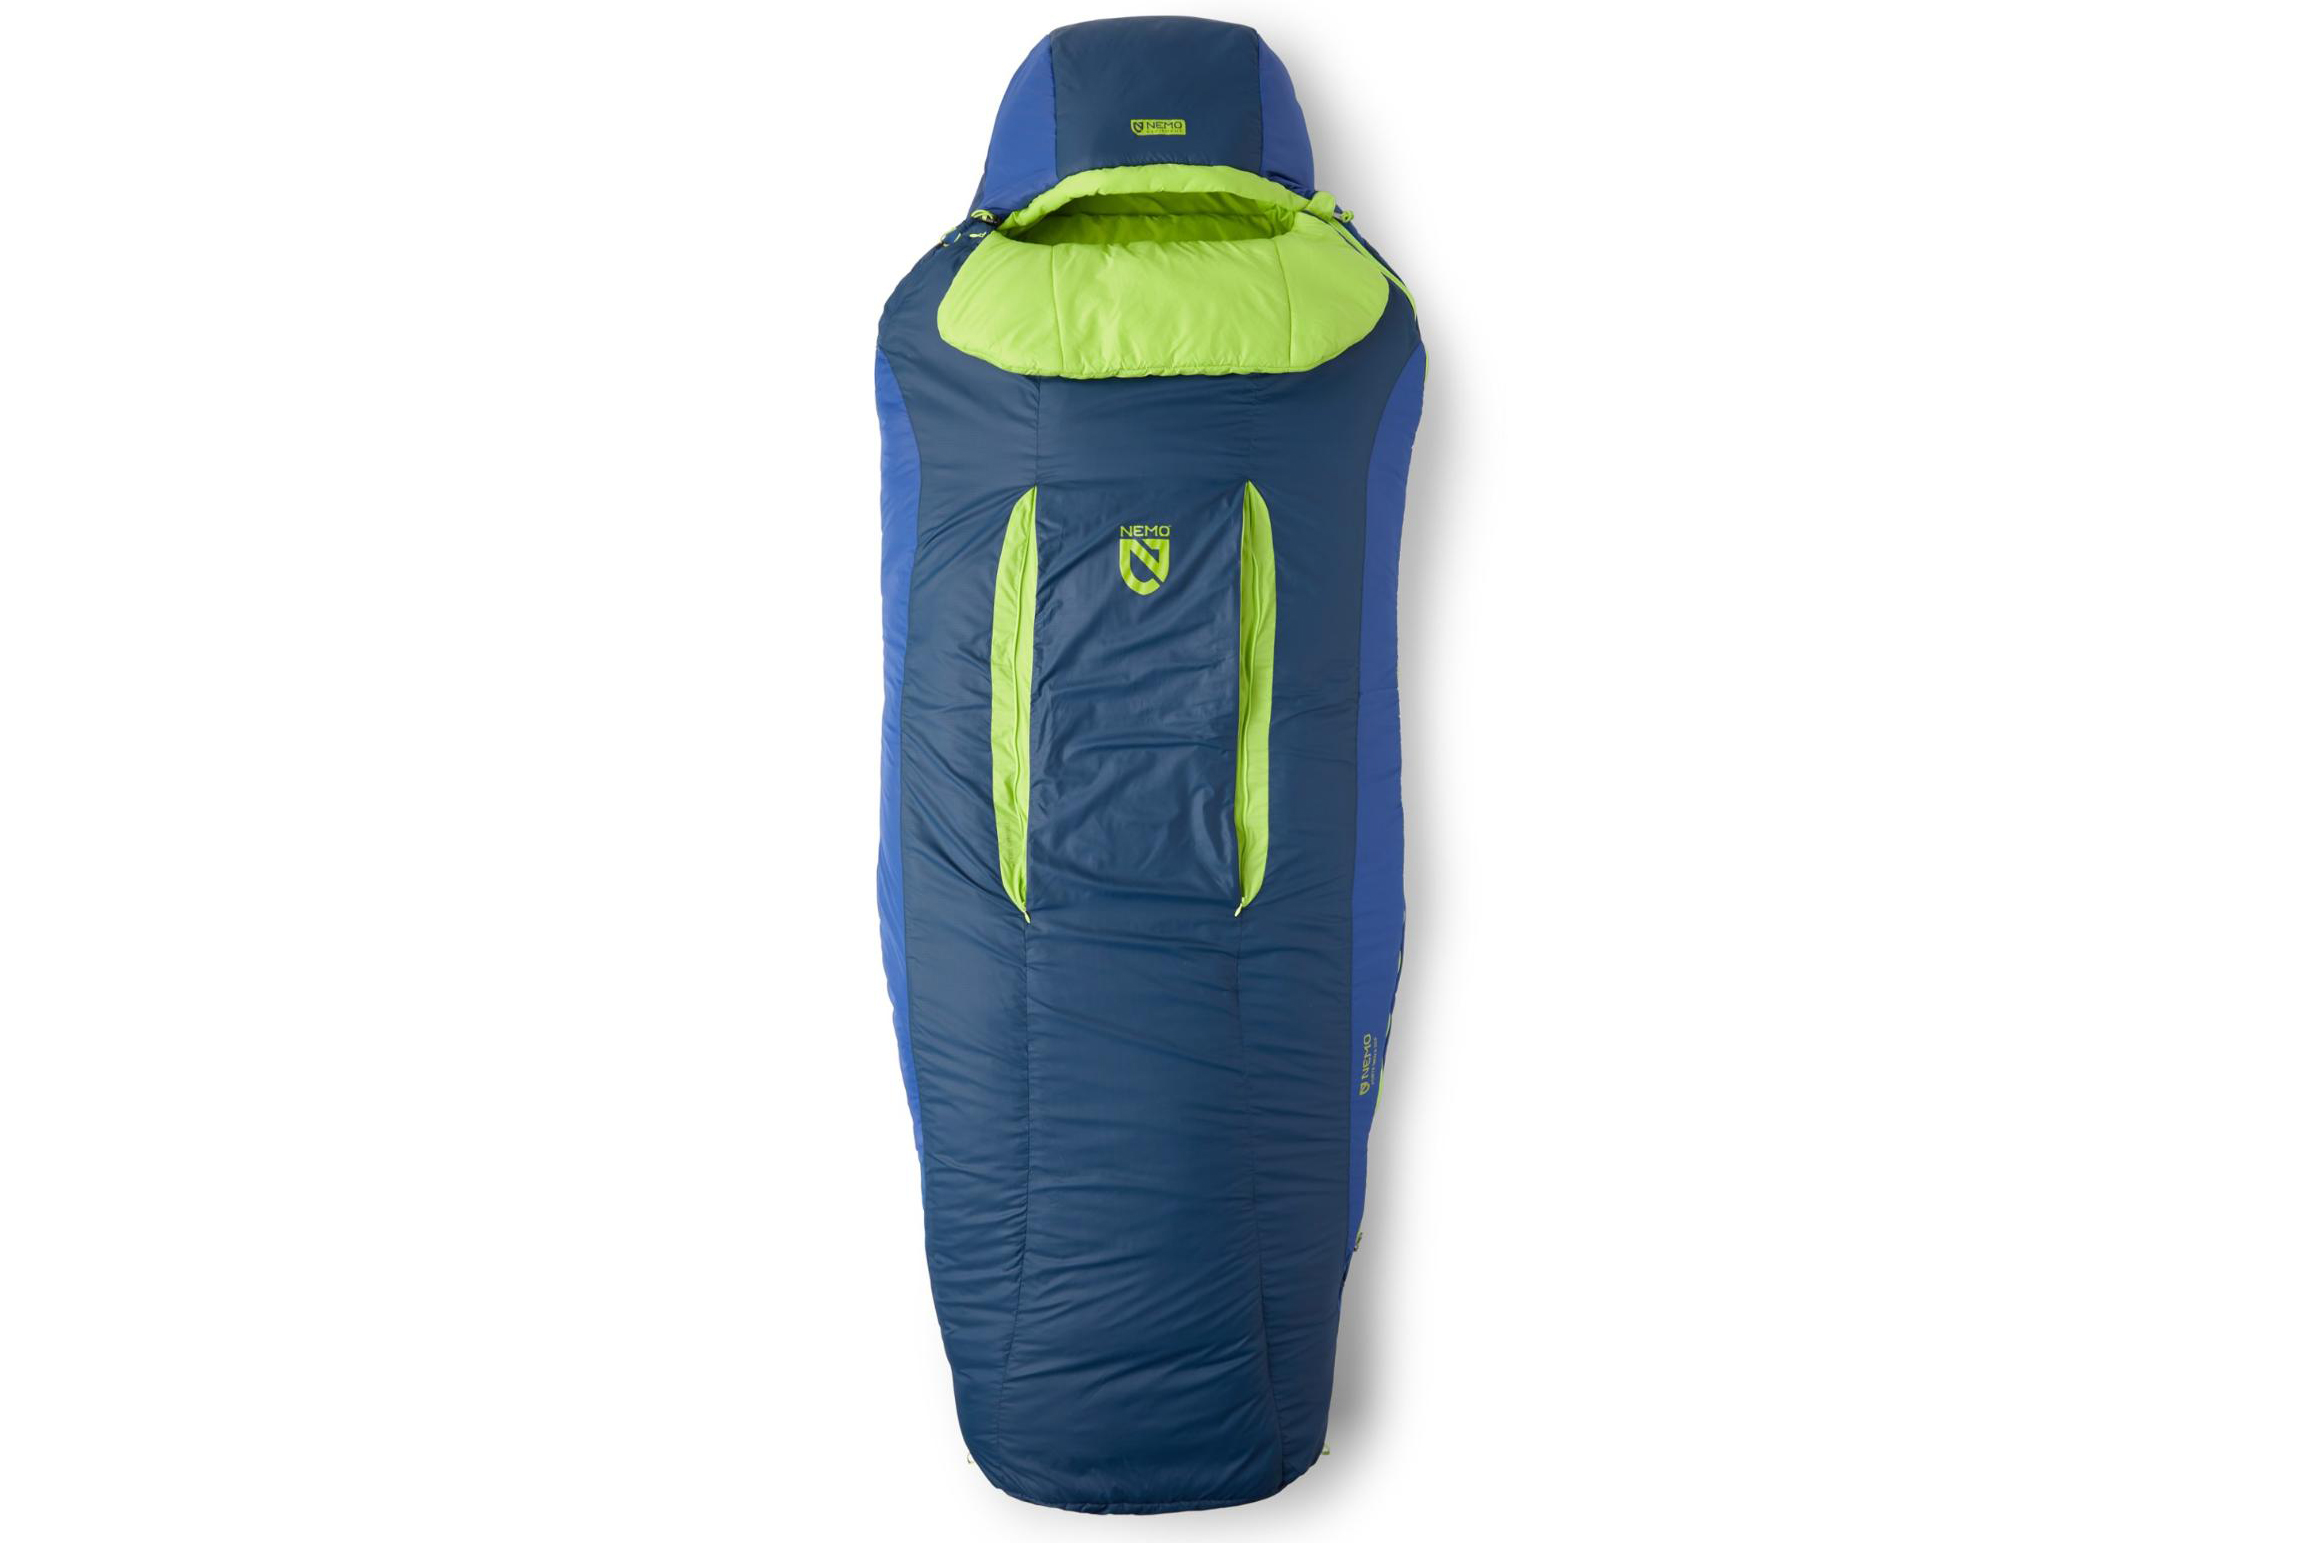 Nemo Forte sleeping bag